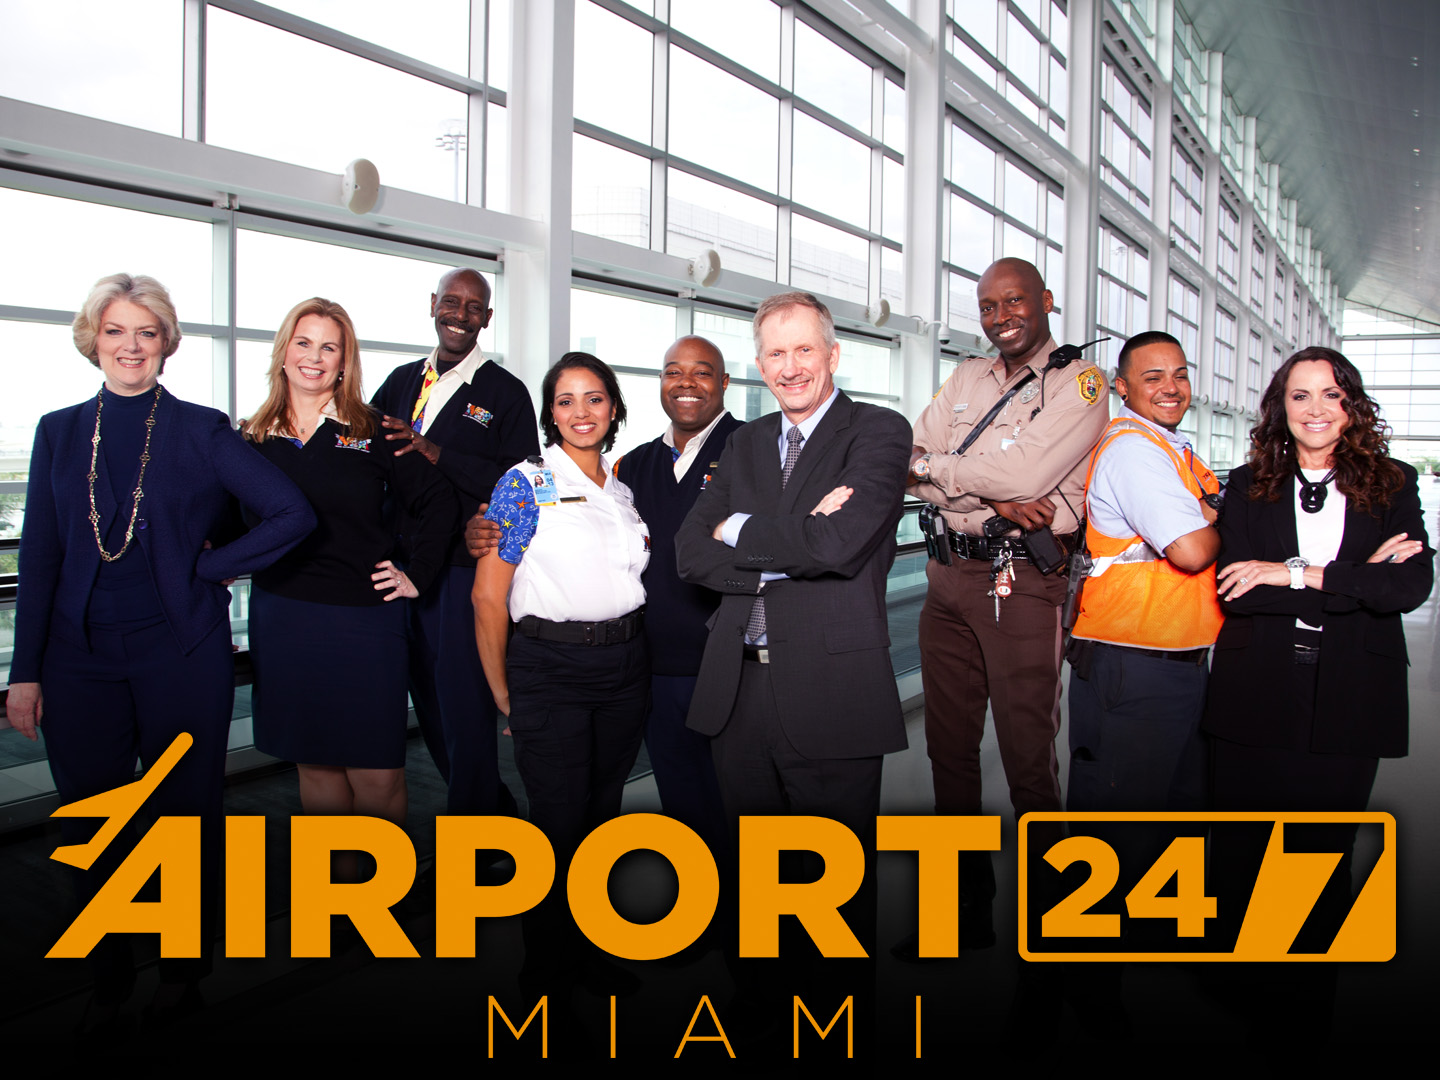 Airport 24/7 Miami premieres April 30 on Travel Channel